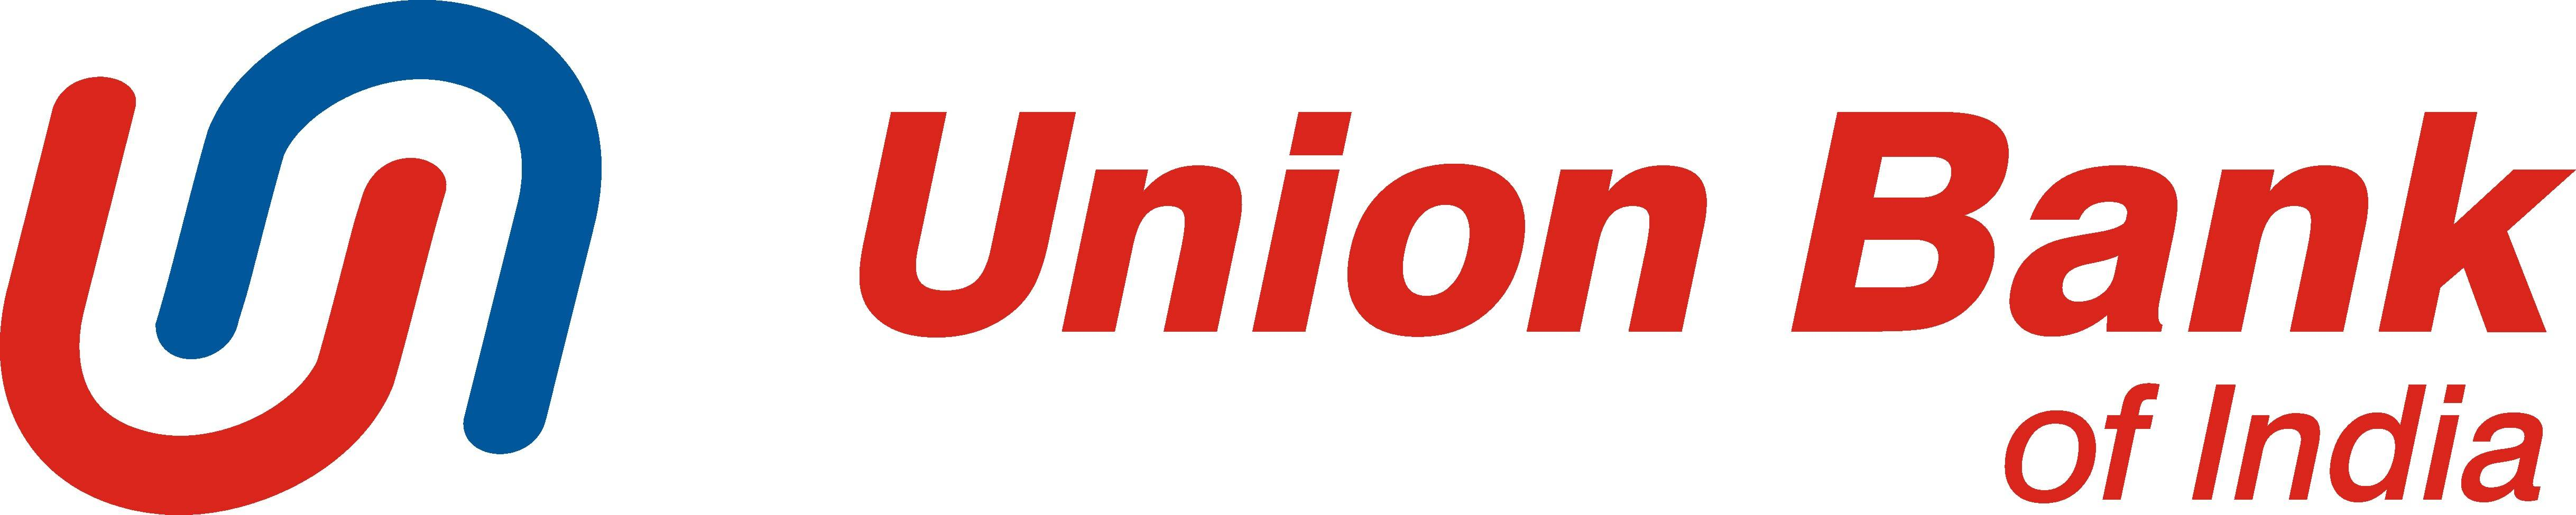 Union Bank Client